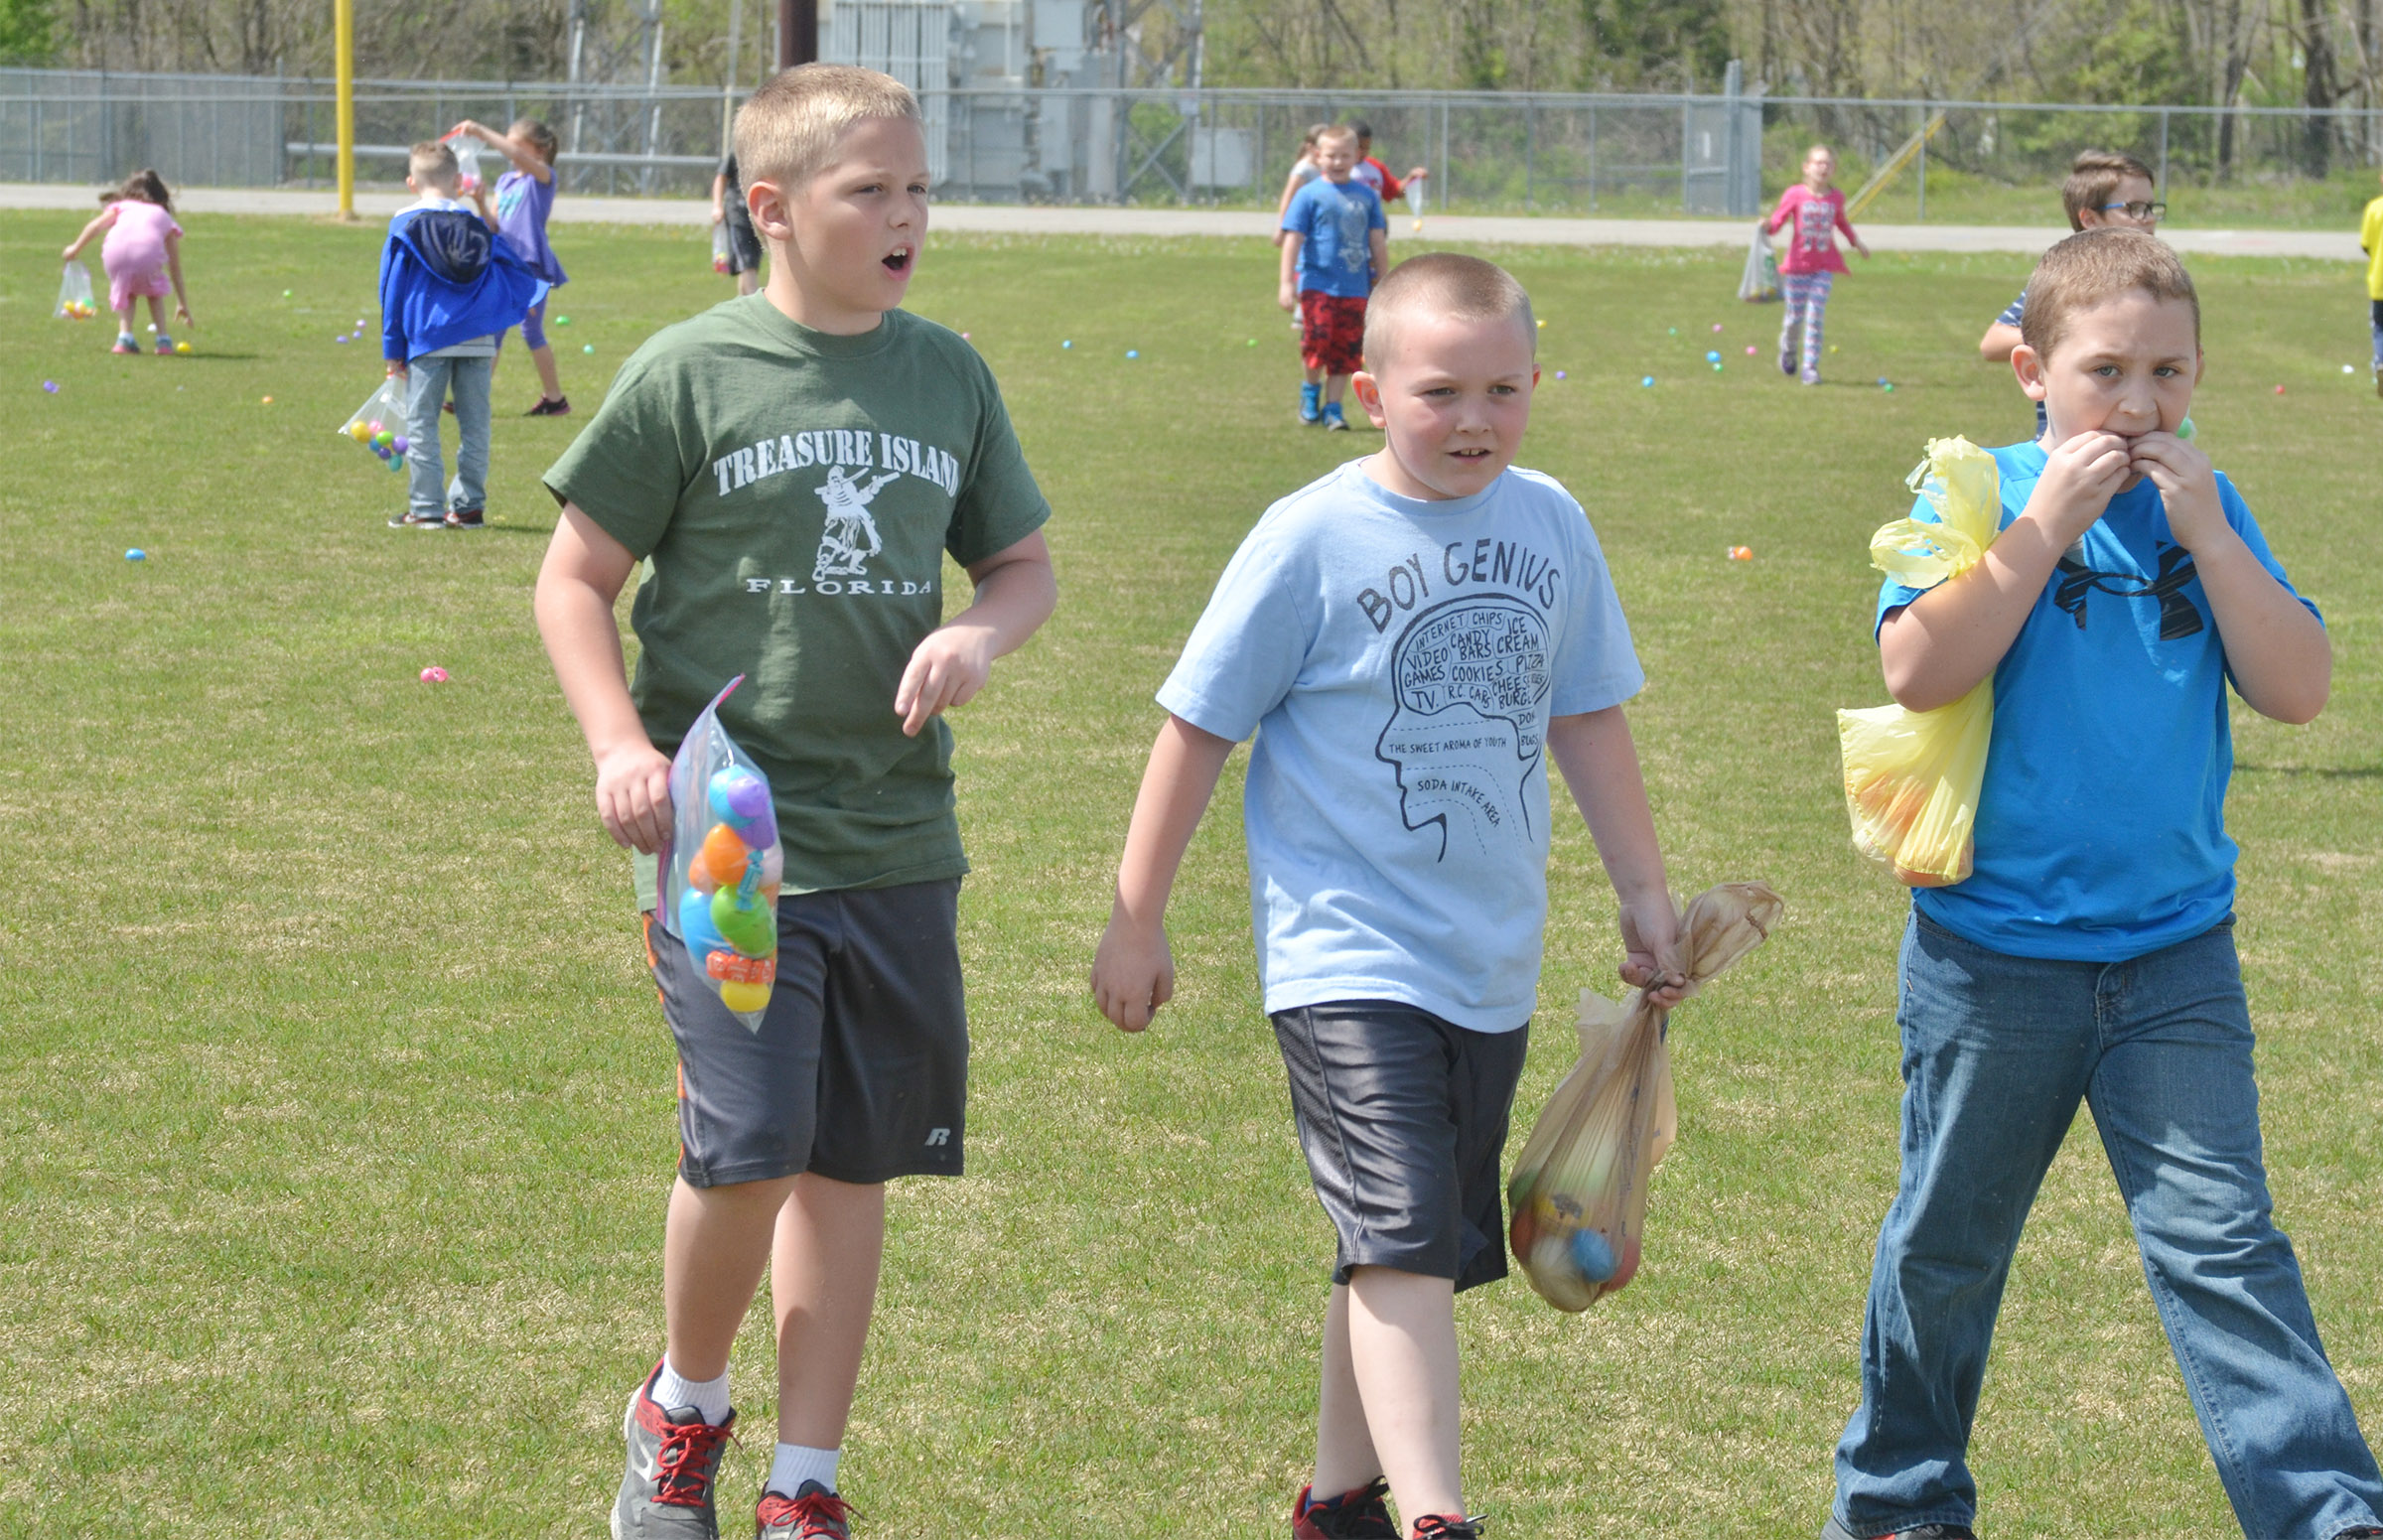 CES second-graders, from left, Evan Lockridge, Griffin Skaggs and Carson Ford search for Easter eggs.